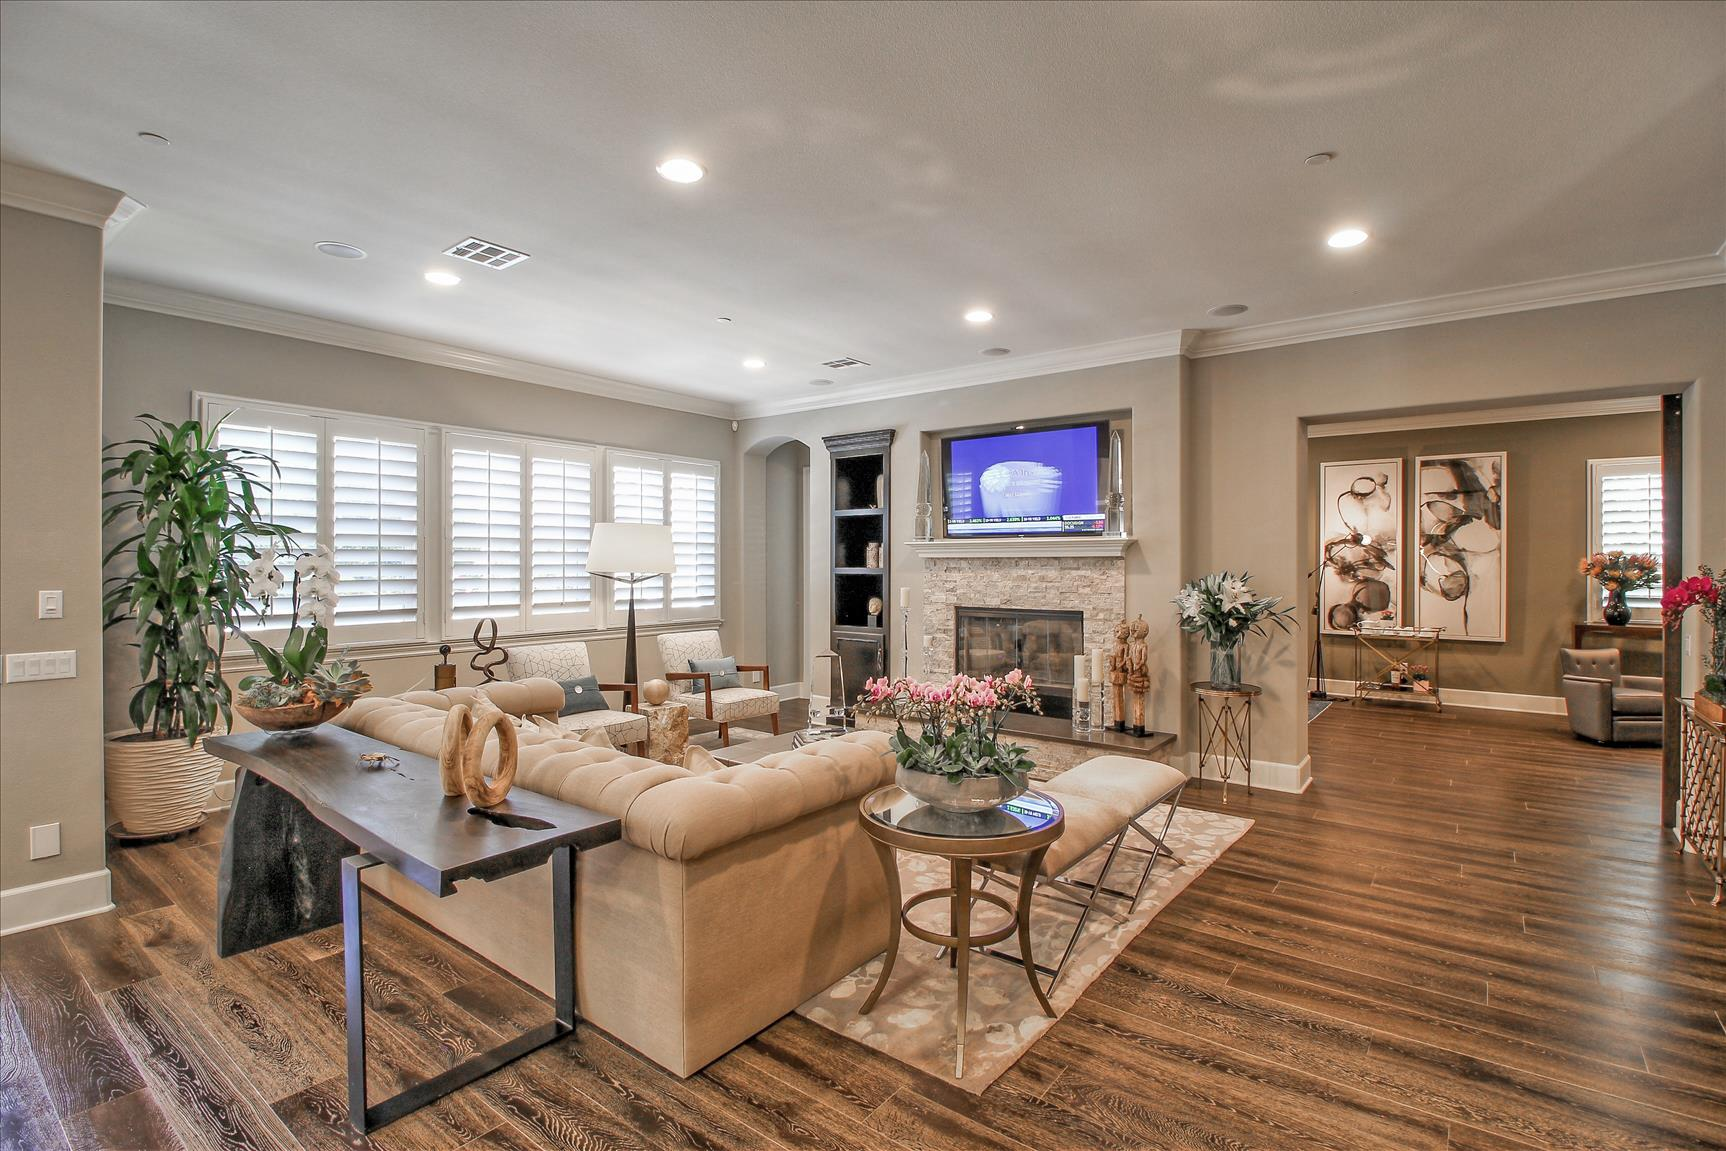 17471 Kennebunk Ln, Huntington Beach, CA  9264913.jpg